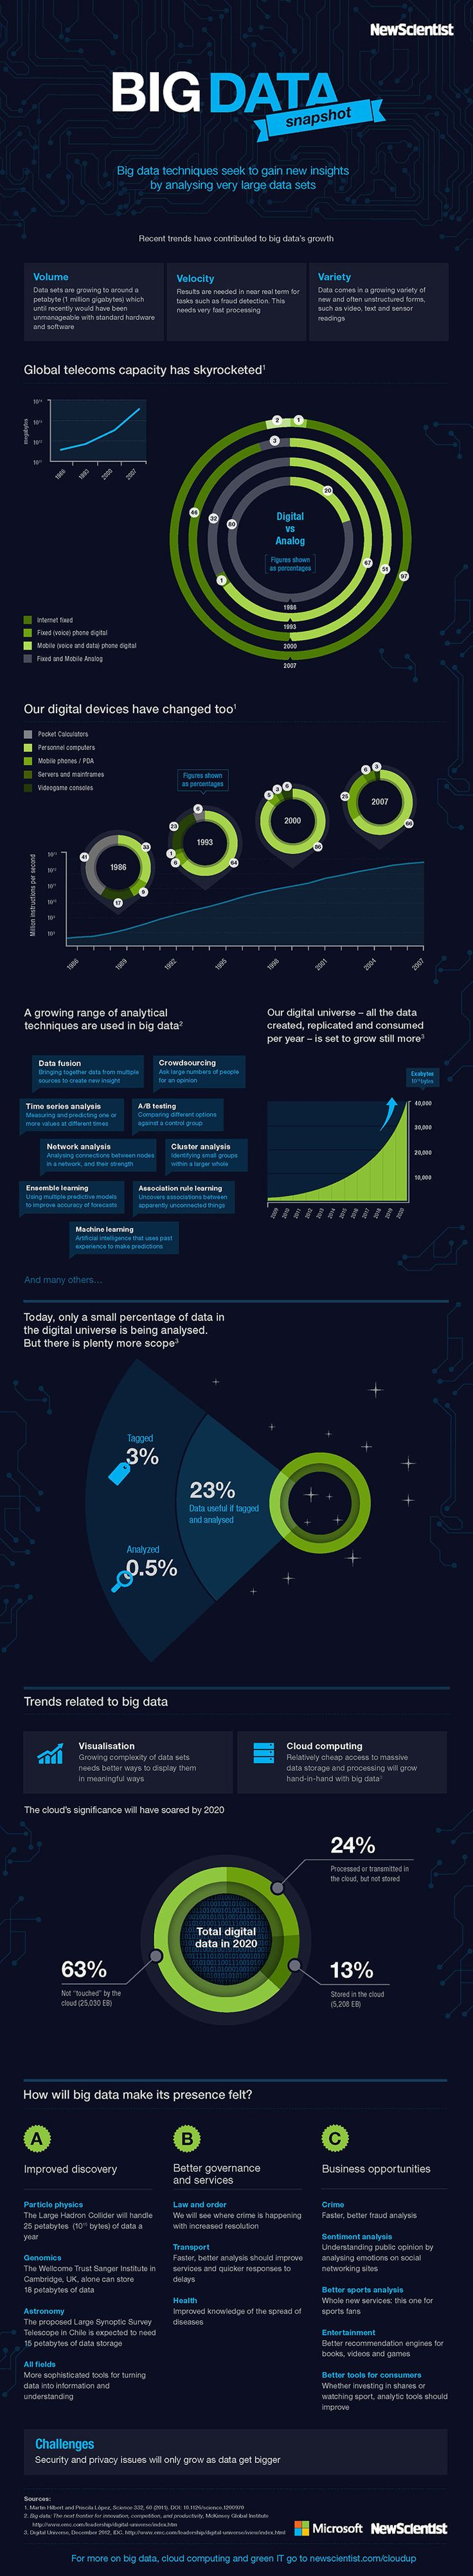 What Are Some Recent Trends Of Big Data? #bigdata #infographic